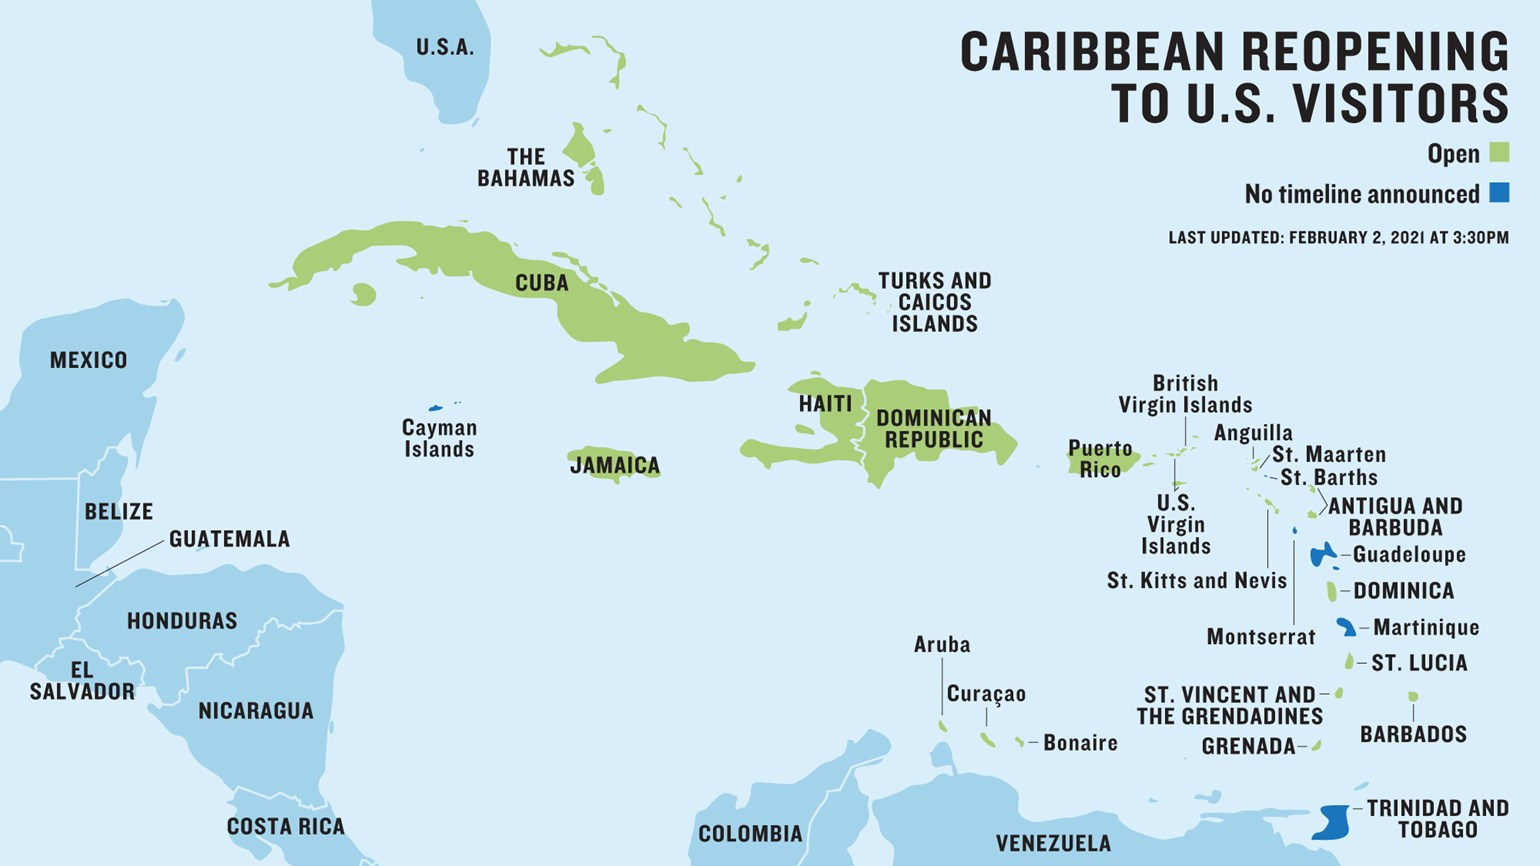 Our map of which Caribbean islands are open or closed to U.S. travelers.